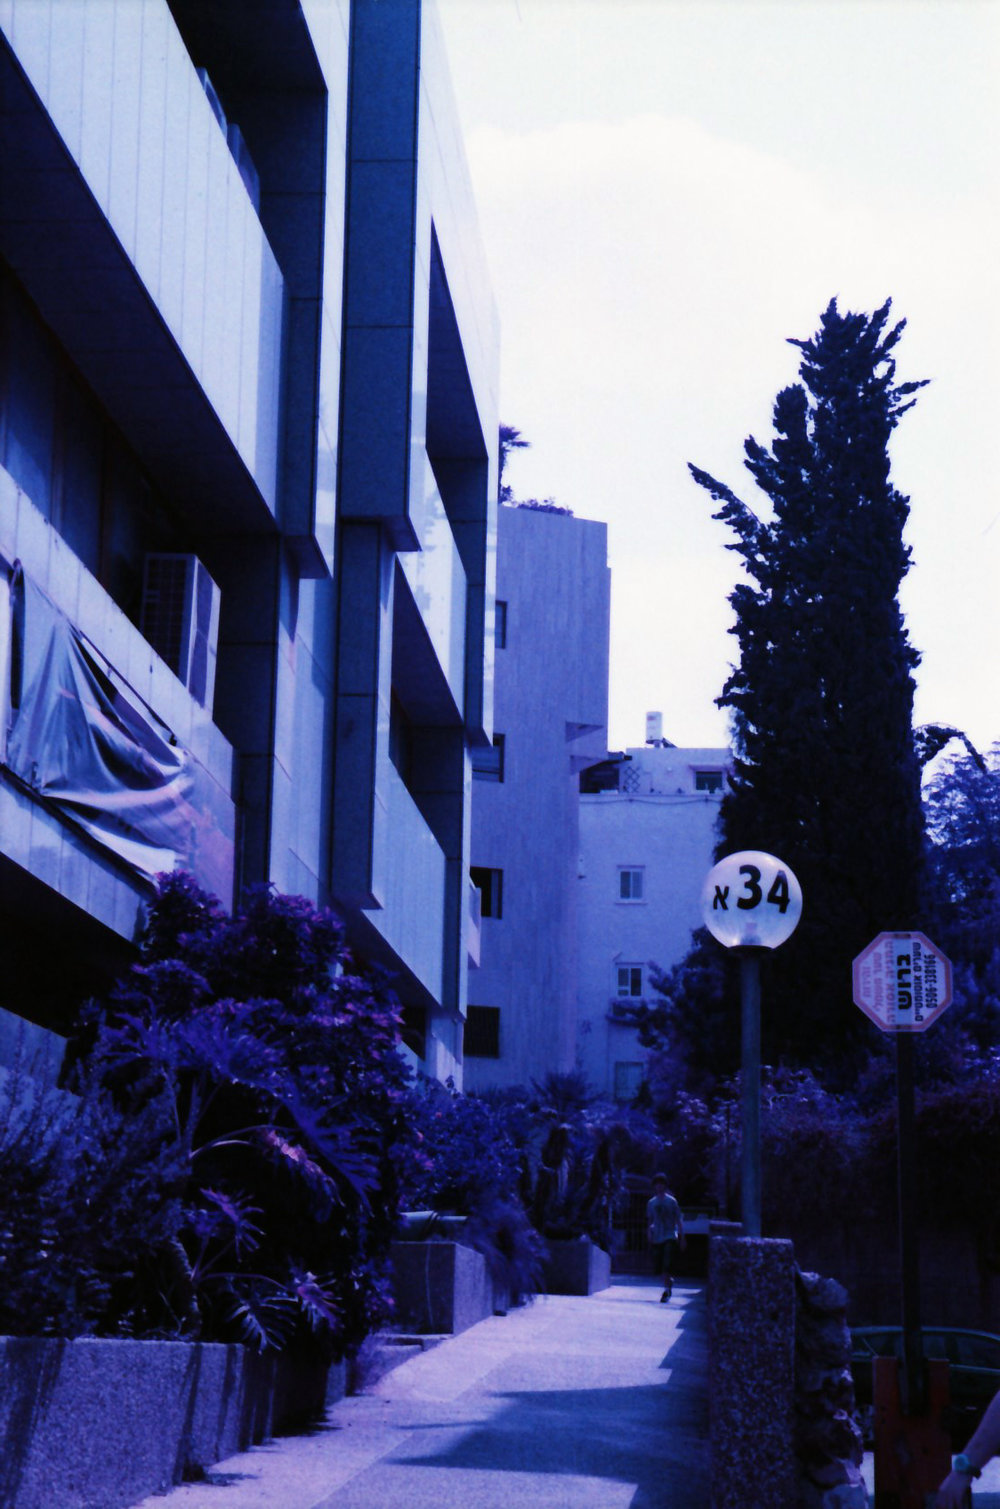 Subject Adam | Film Lomography Lomochrome Purple, 35mm | Ramat HaSharon, Israel 2015